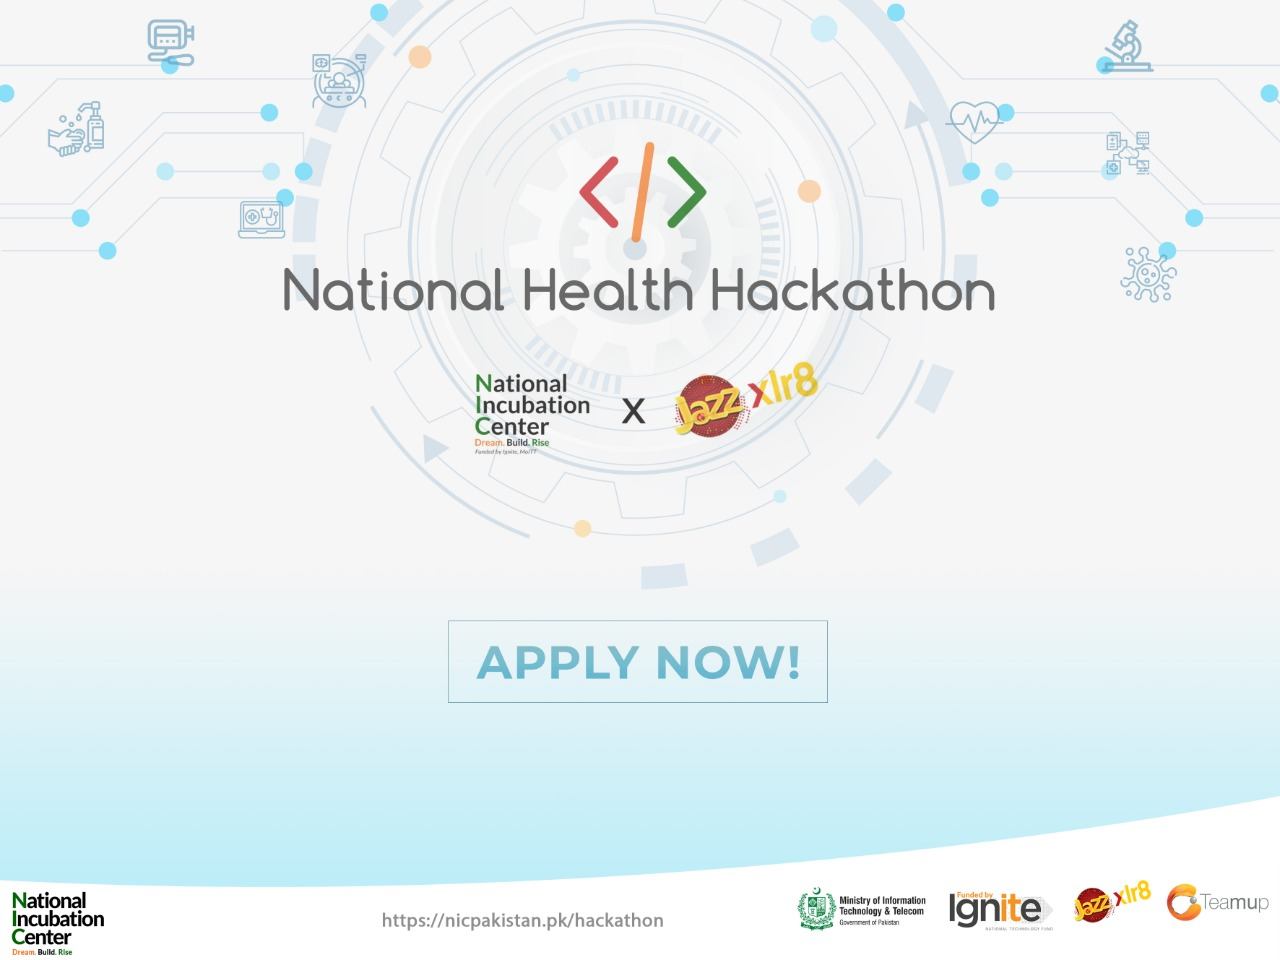 launch a National Health Hackathon on COVID-19 & communicable diseases